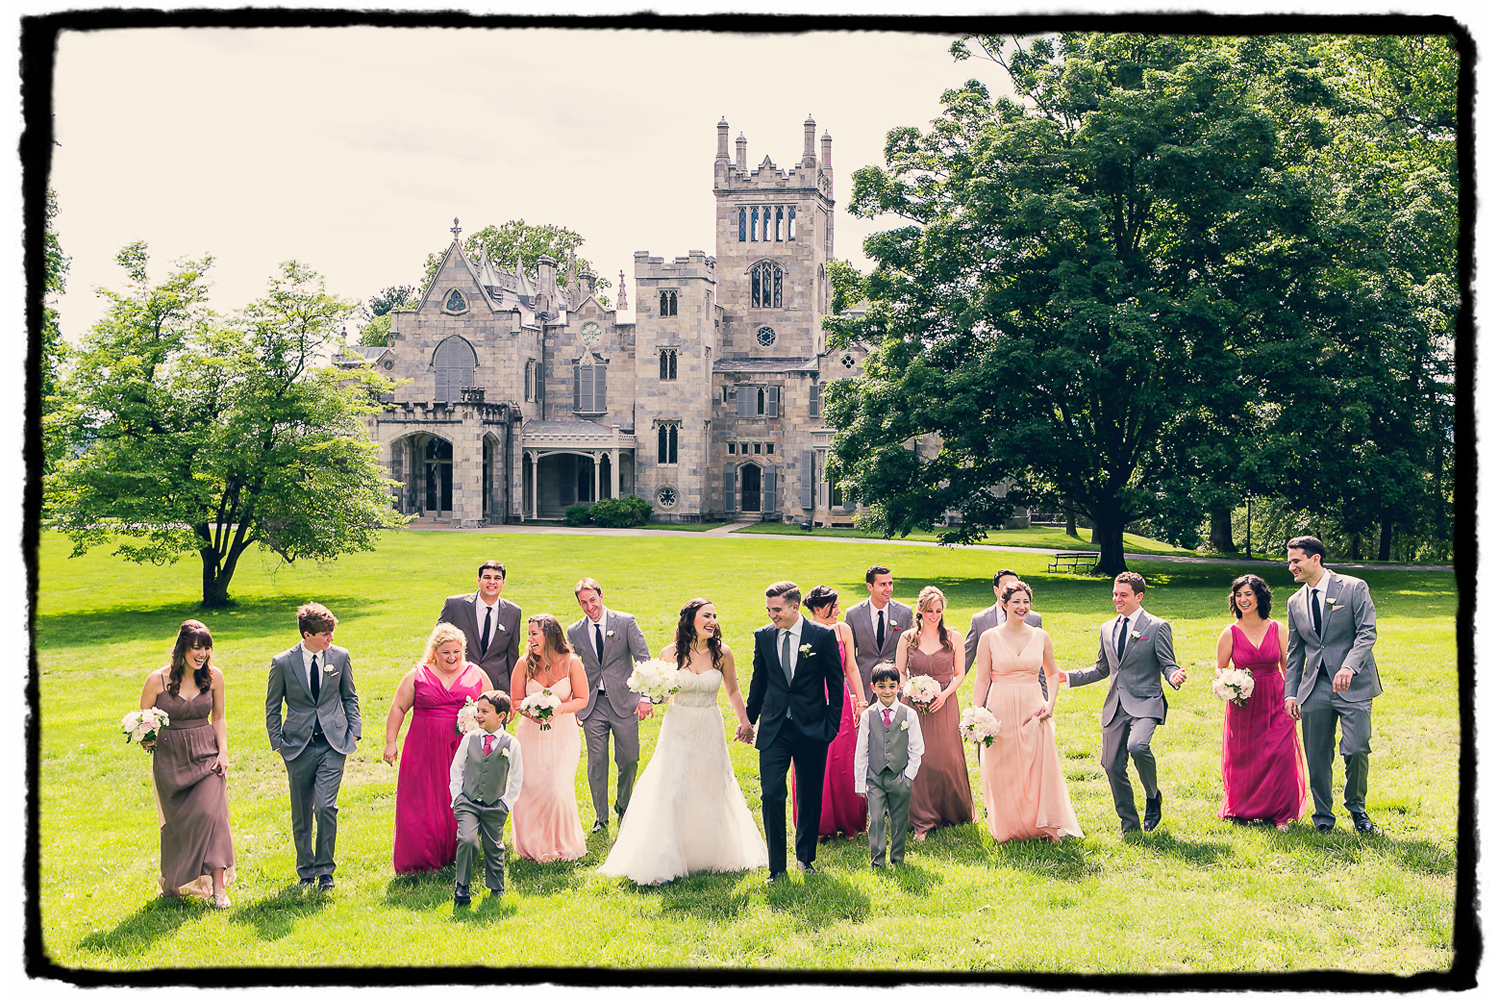 A wedding party in shades of pink and grey outside at Lyndhurst Castle in Westchester NY.